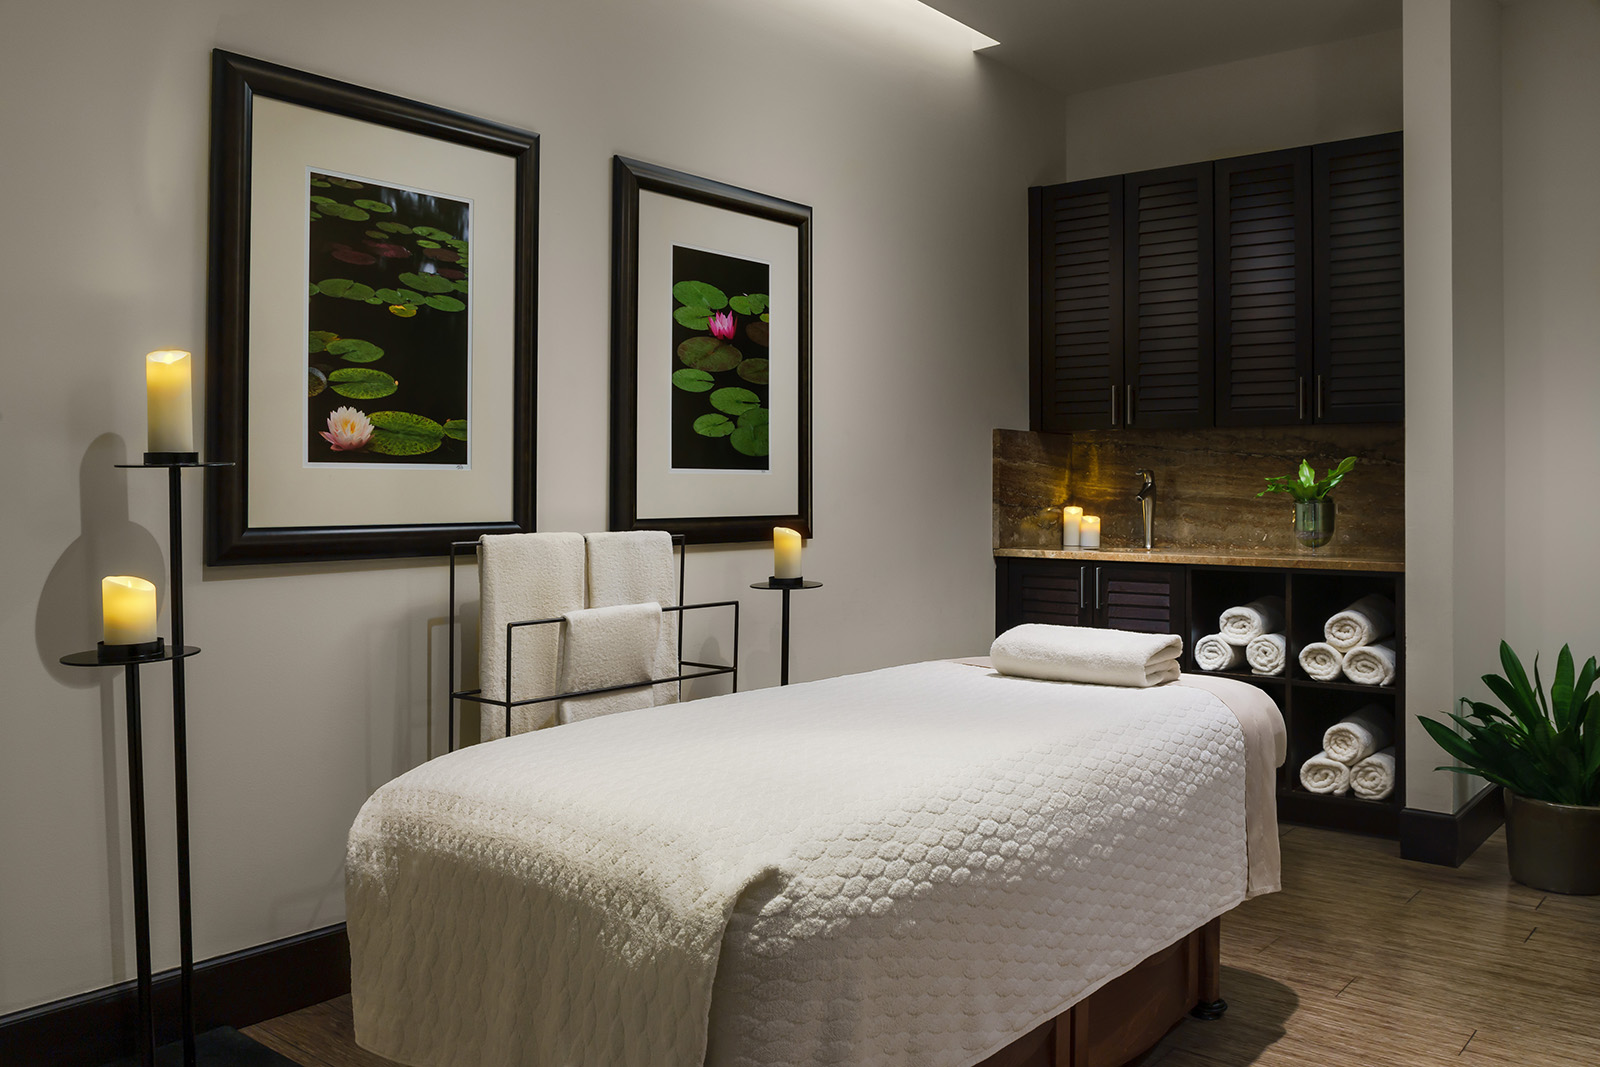 Treatment room at the Seagate Hotel